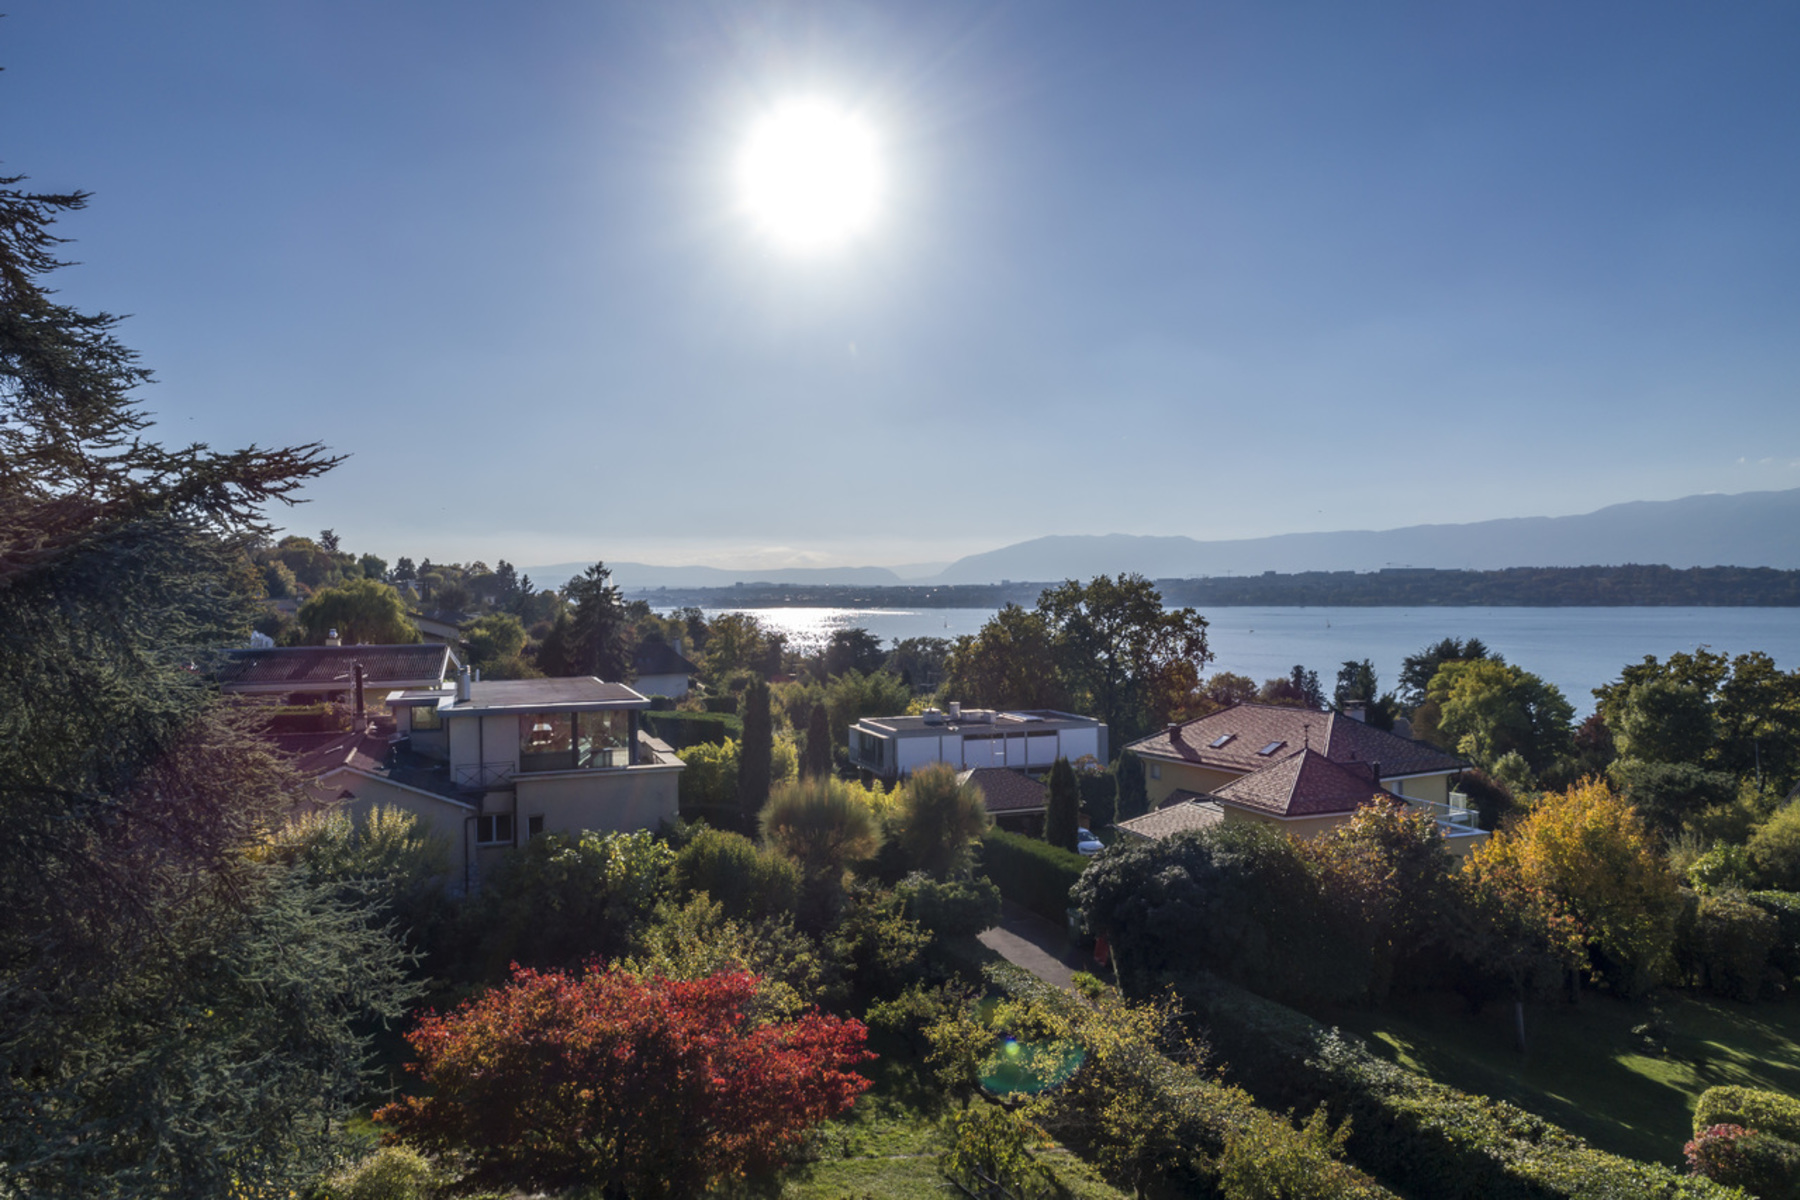 Property for Sale at Commanding view of Geneva and the lake Cologny Cologny, Geneva 1223 Switzerland